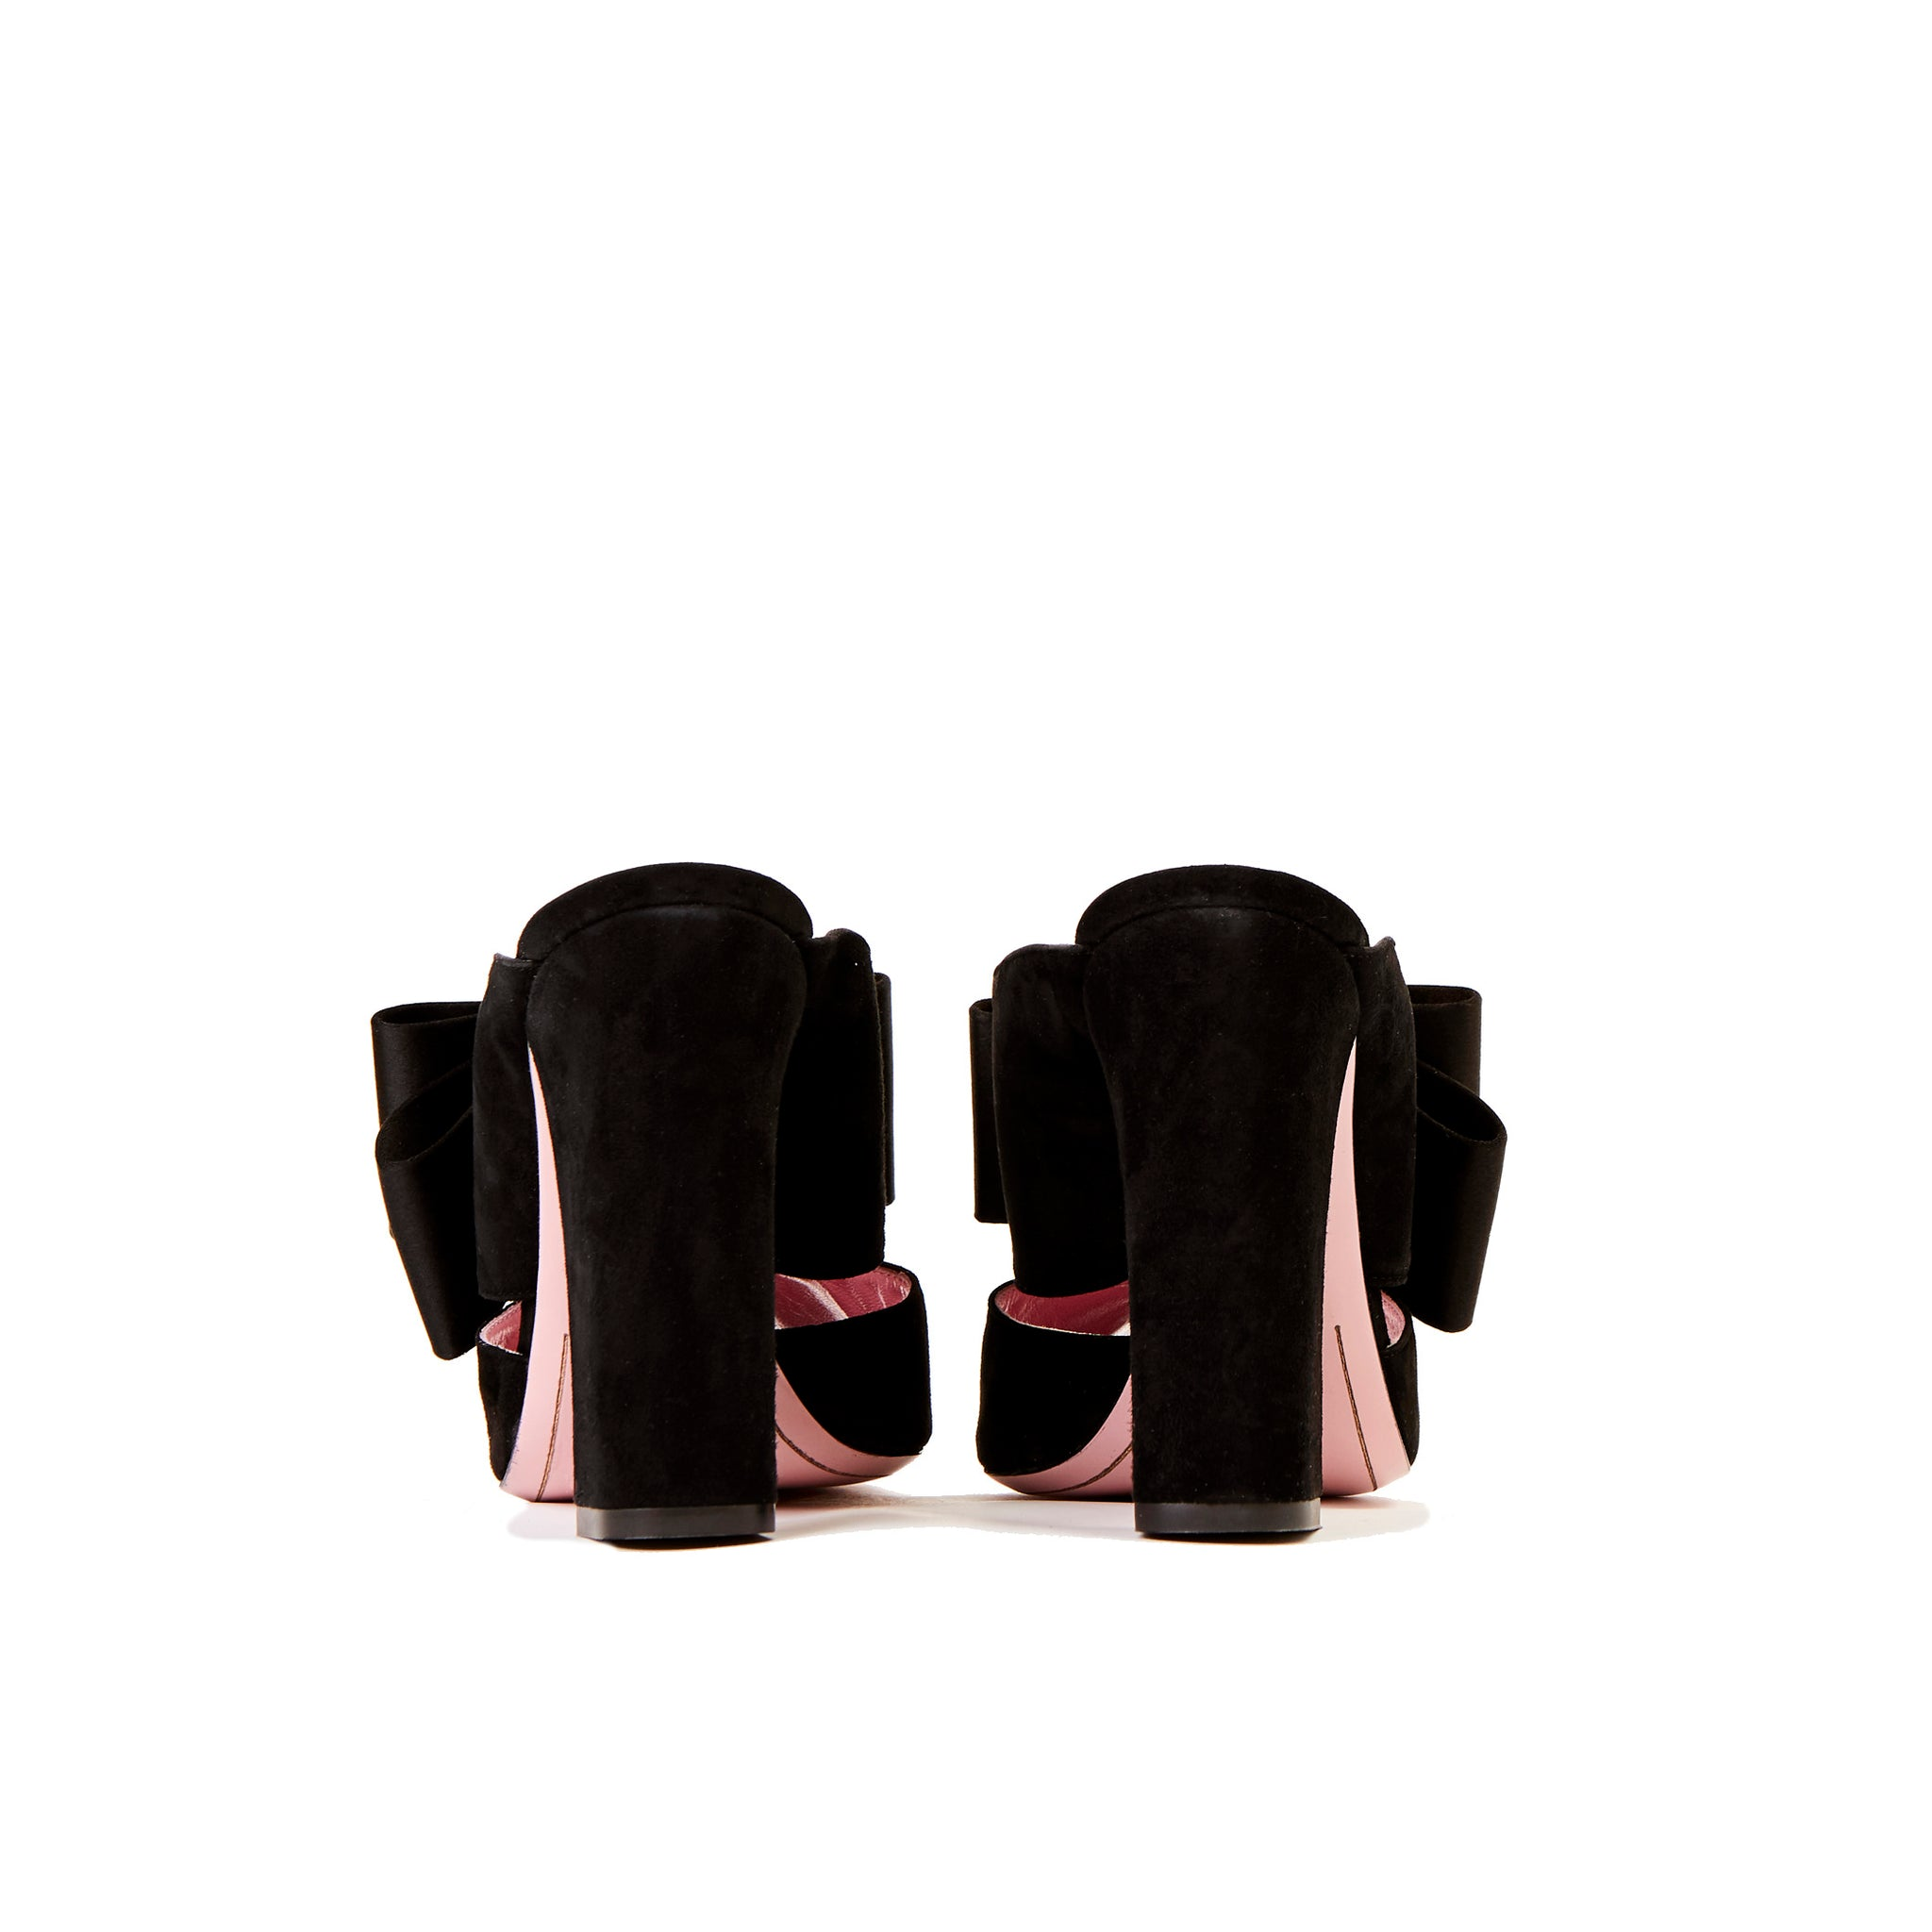 Phare High heel block heel mule with bow in black suede and satin top view